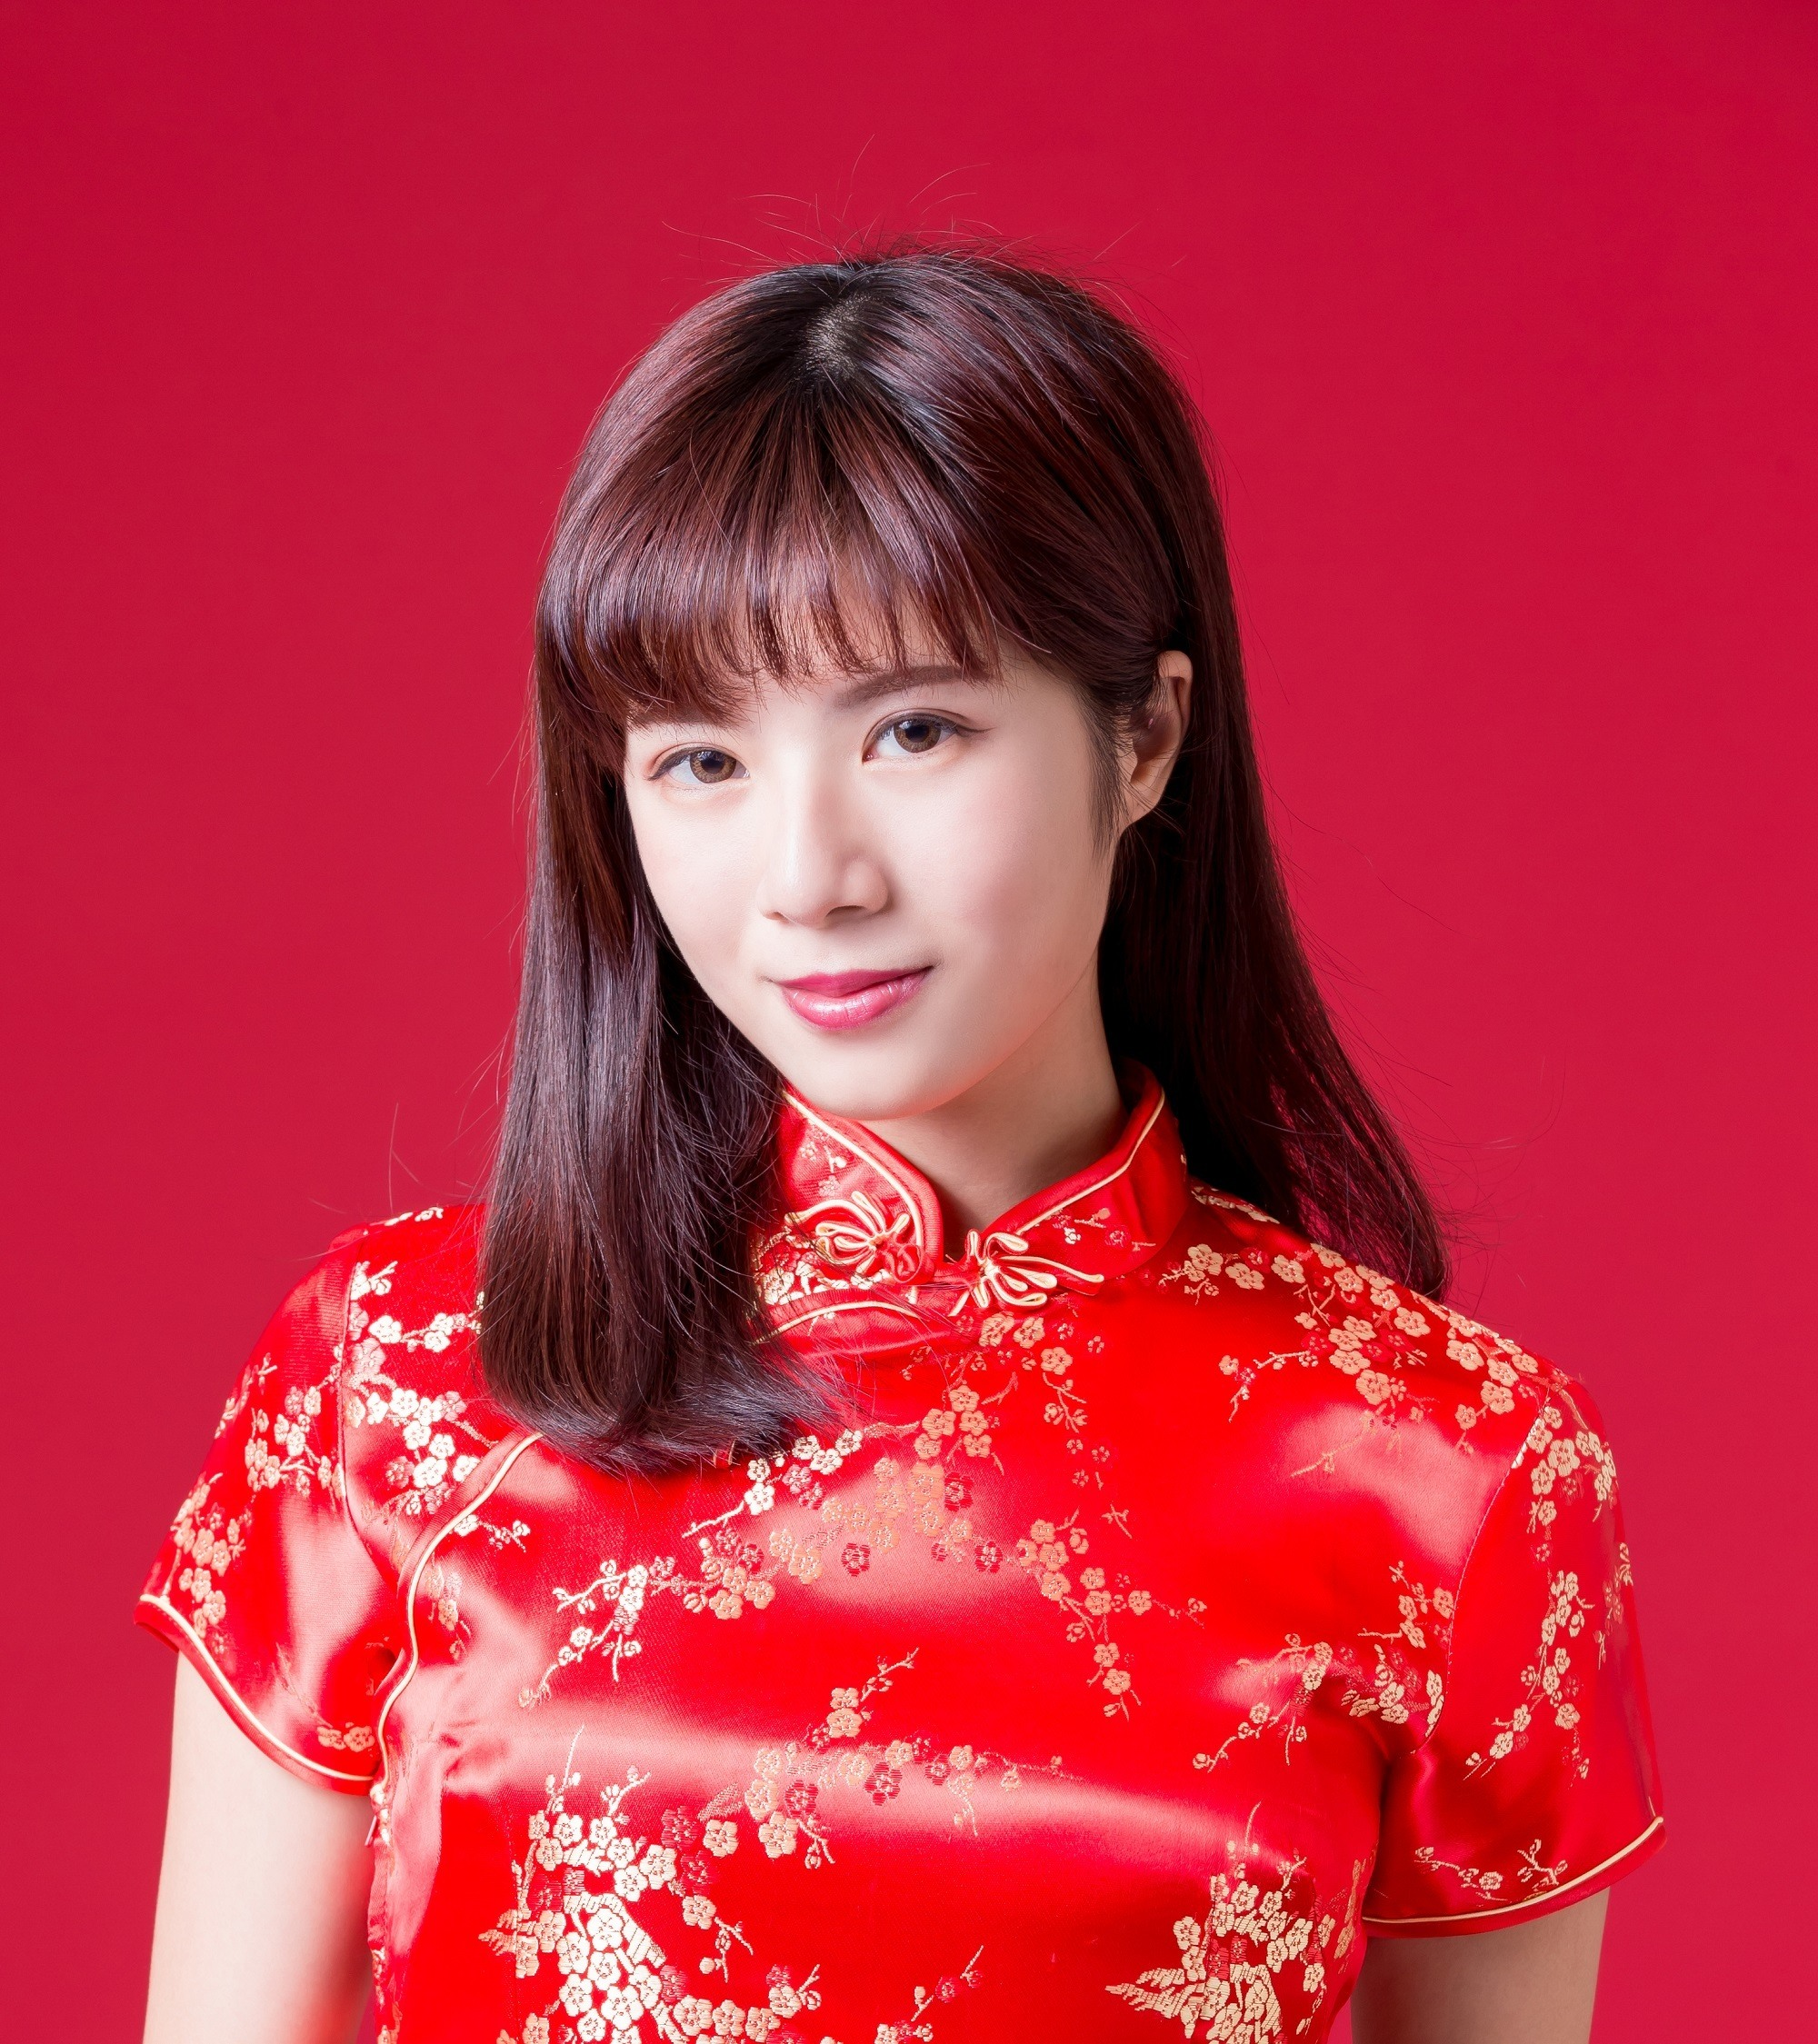 Chinese hairstyles: Closeup shot of an Asian woman with long black hair with bangs wearing a red dress